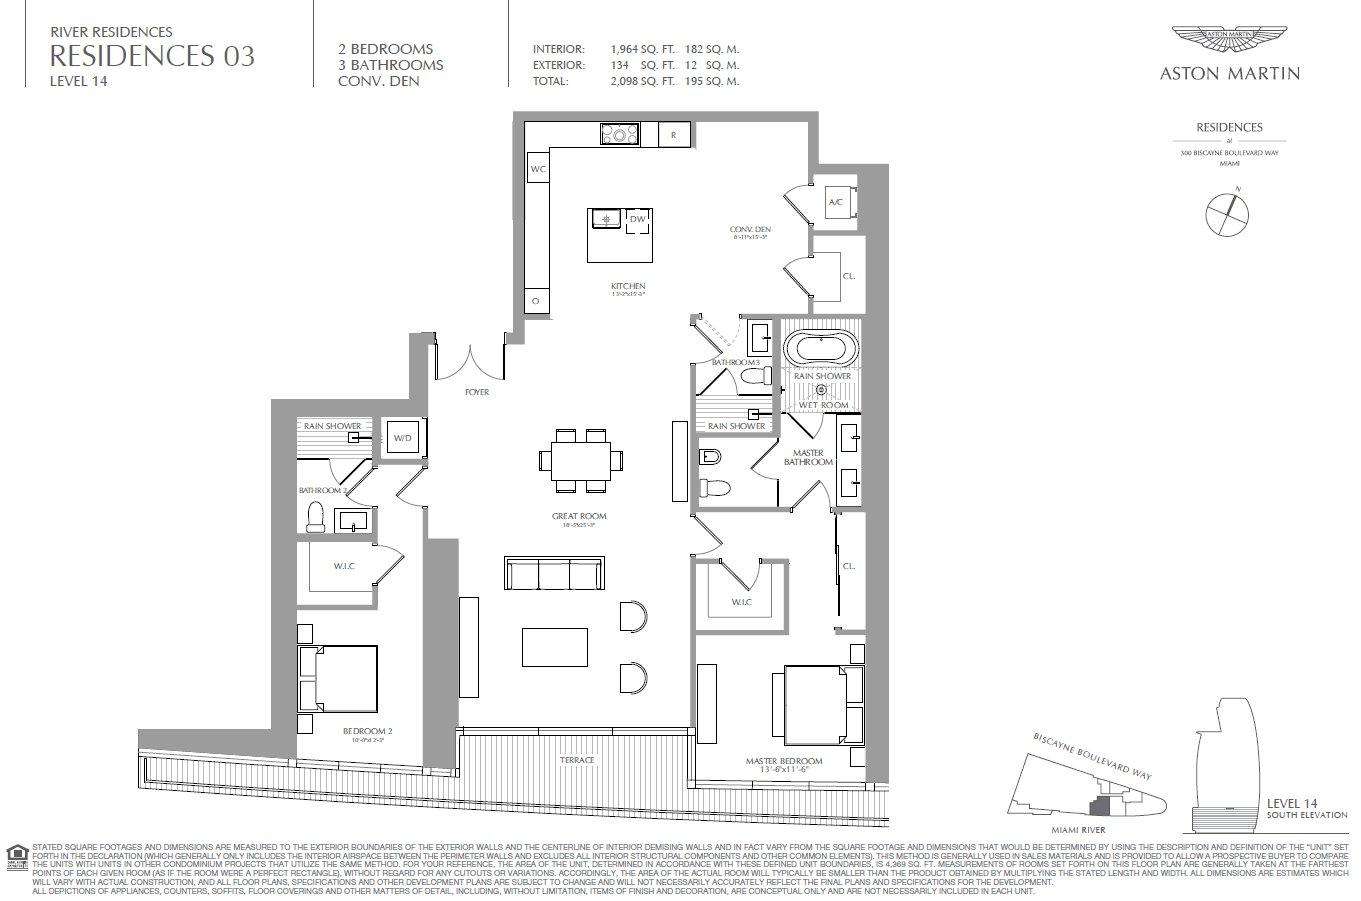 Aston Martin Residences Floor Plan 03